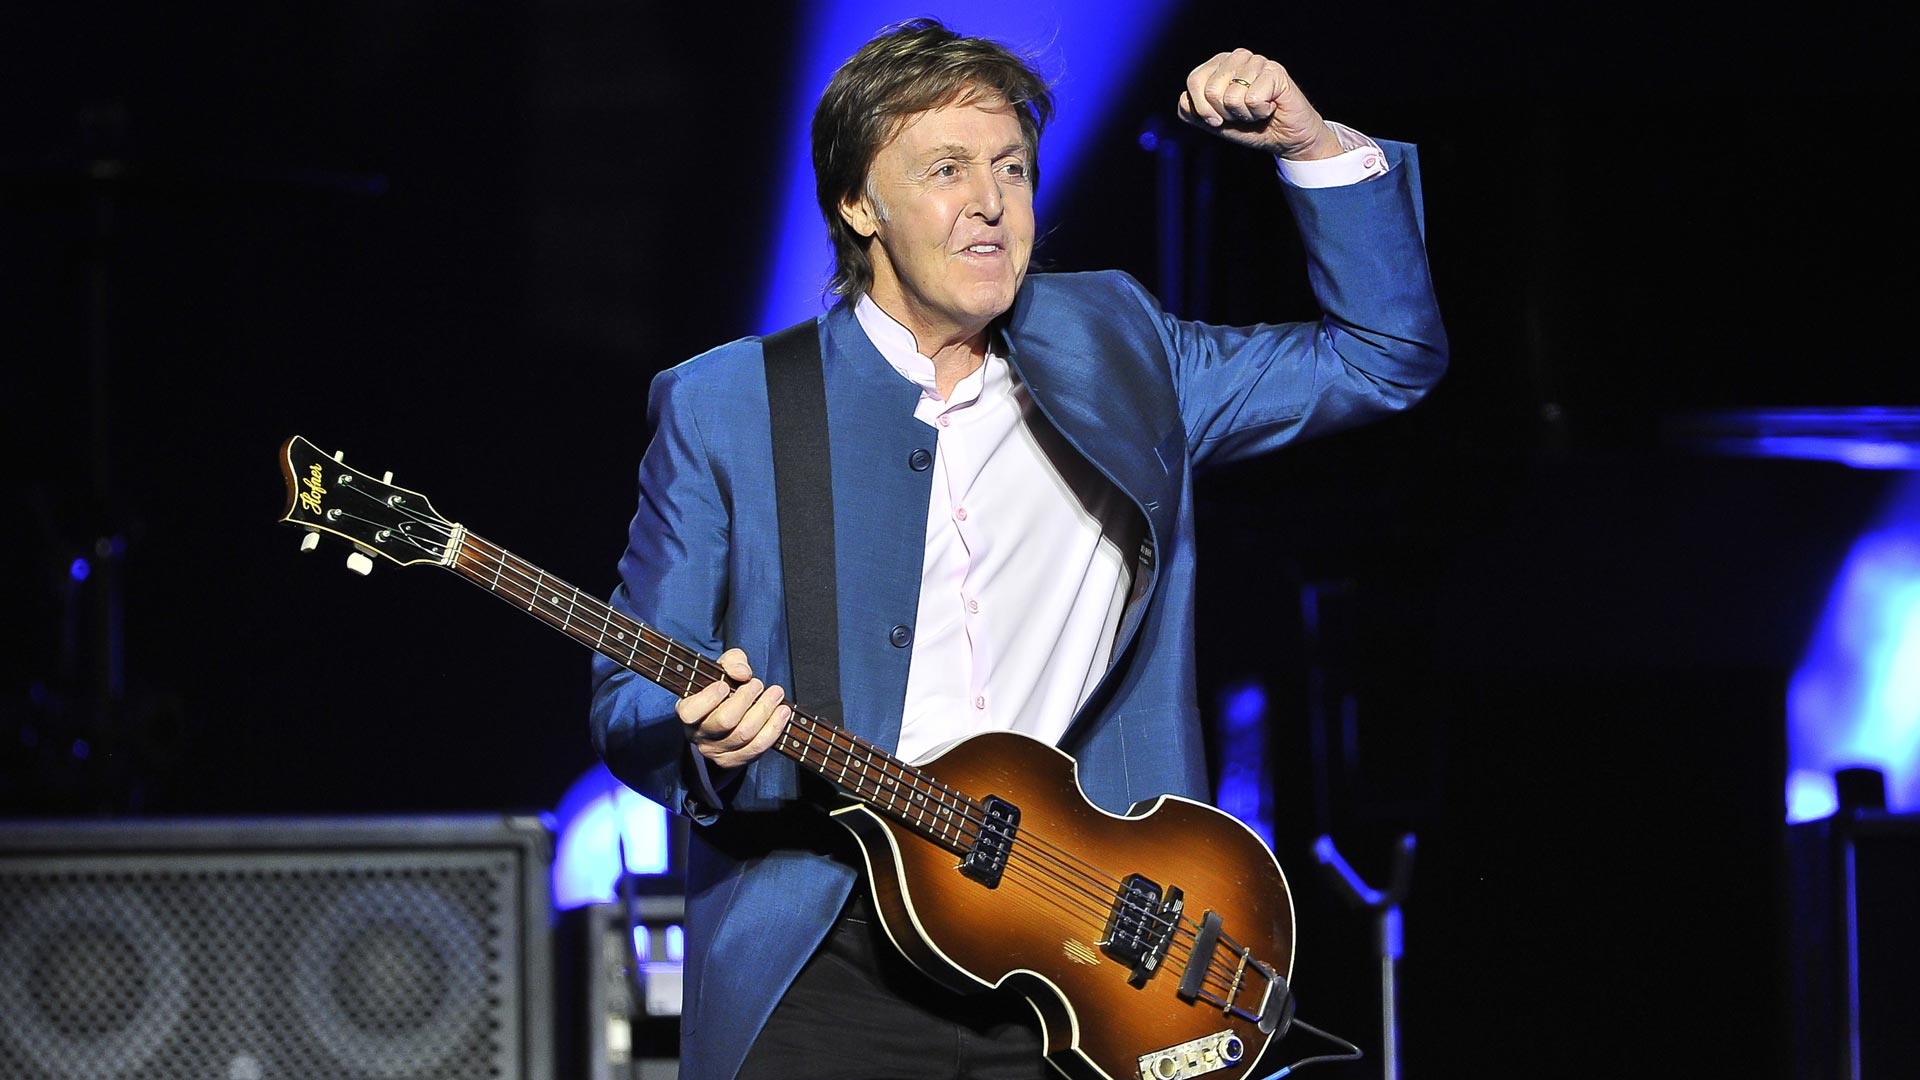 Noch immer bestens in Form: Sir Paul McCartney